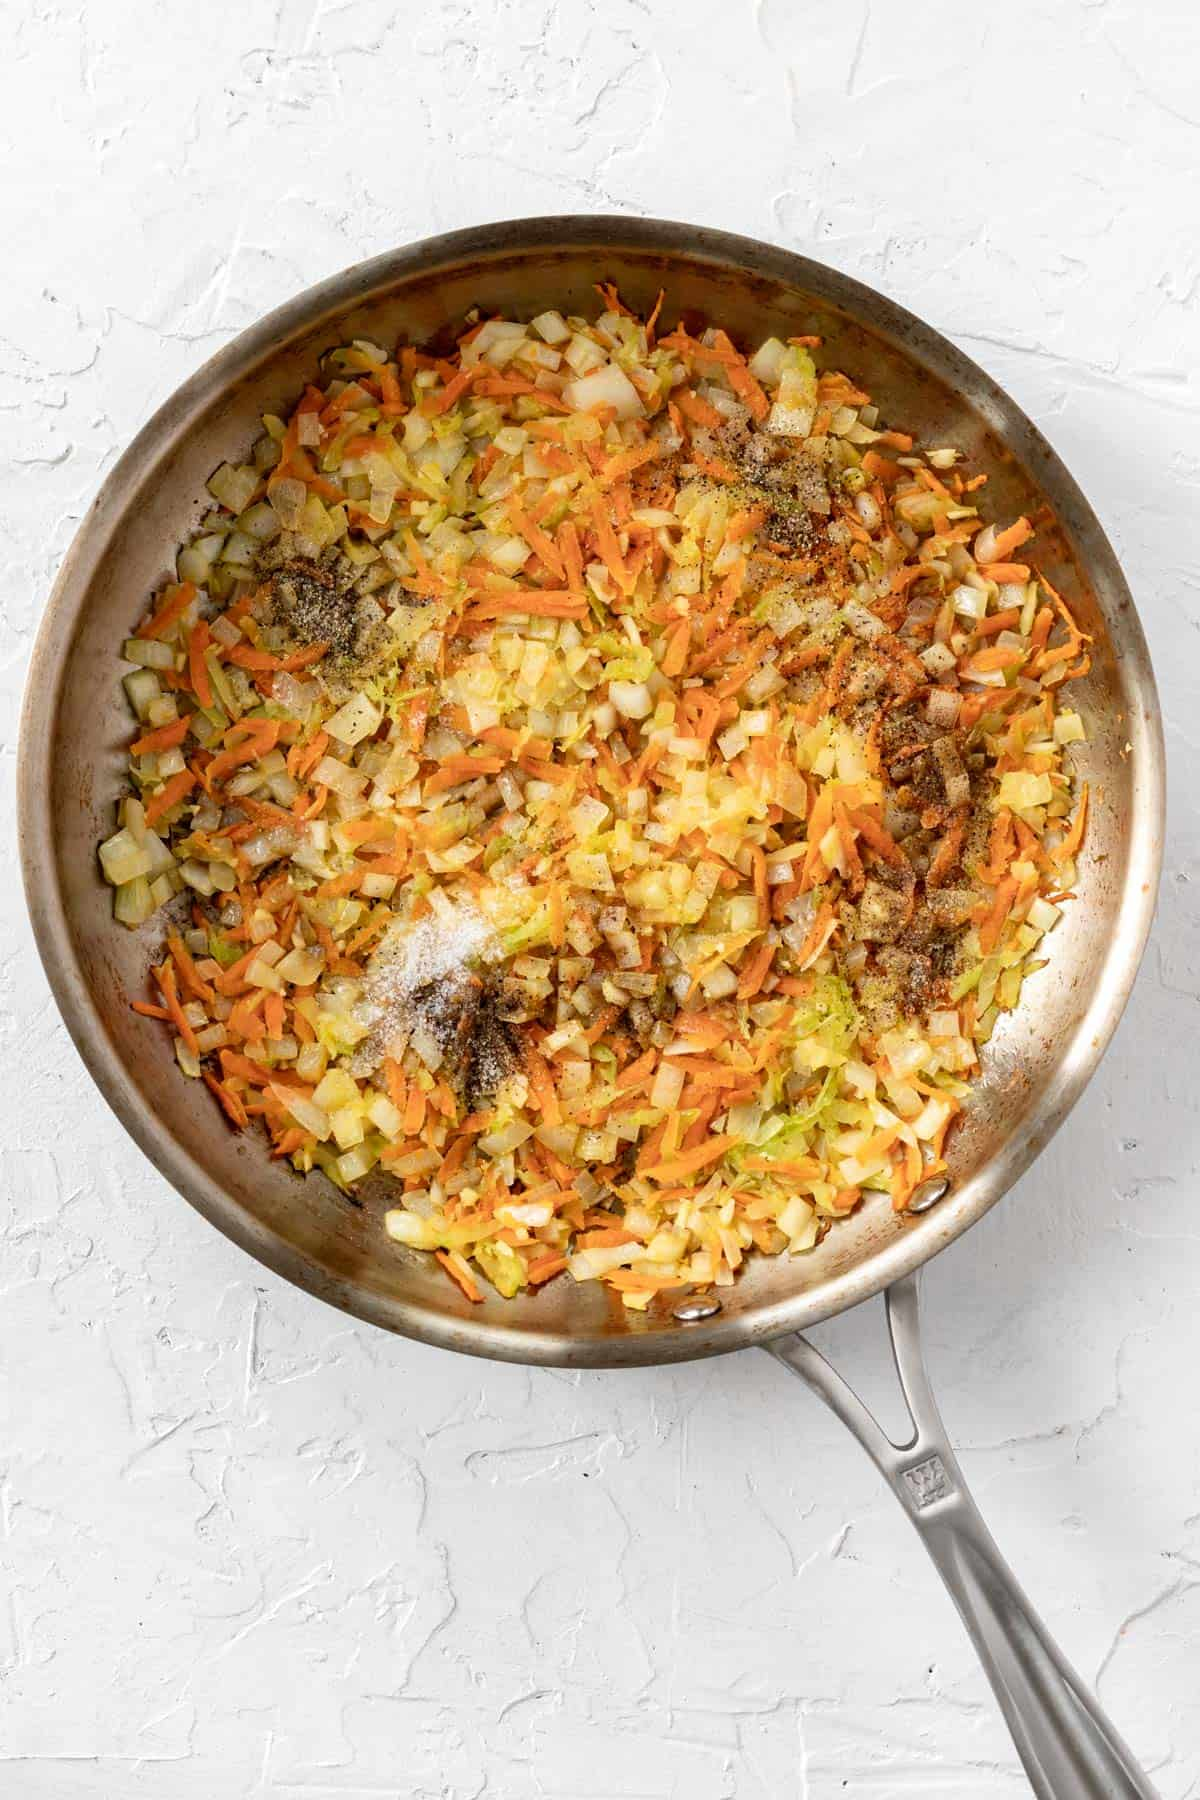 Shredded carrots, celery, onions, and garlic seasoned with salt, pepper, and Worcestershire sauce.